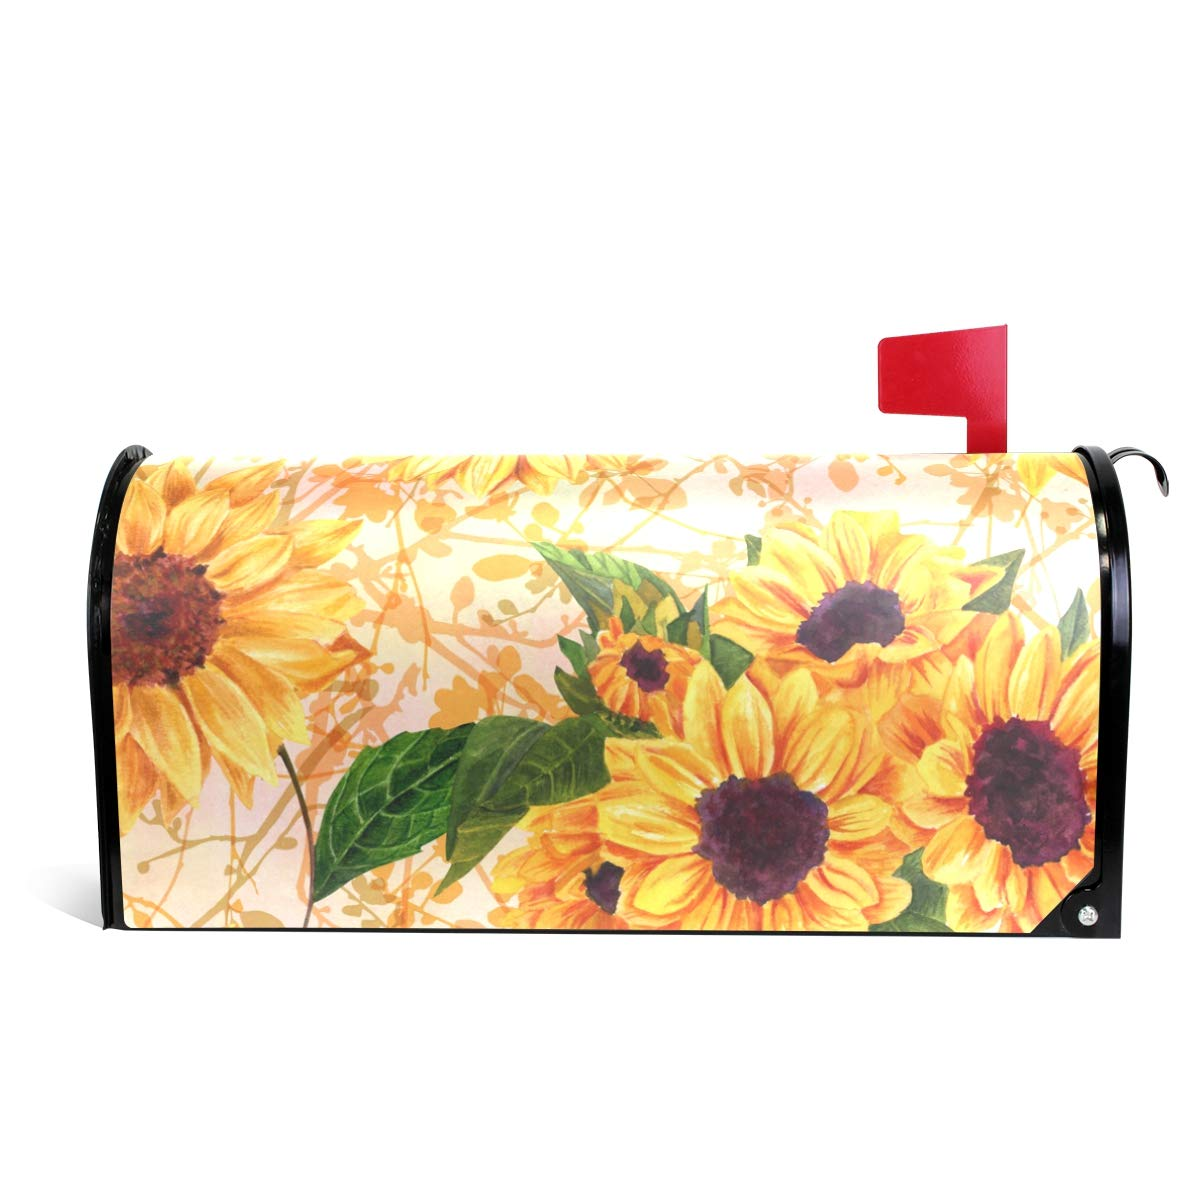 CiCily Magnetic Mailbox Cover Sunflower Decoration for House Garden